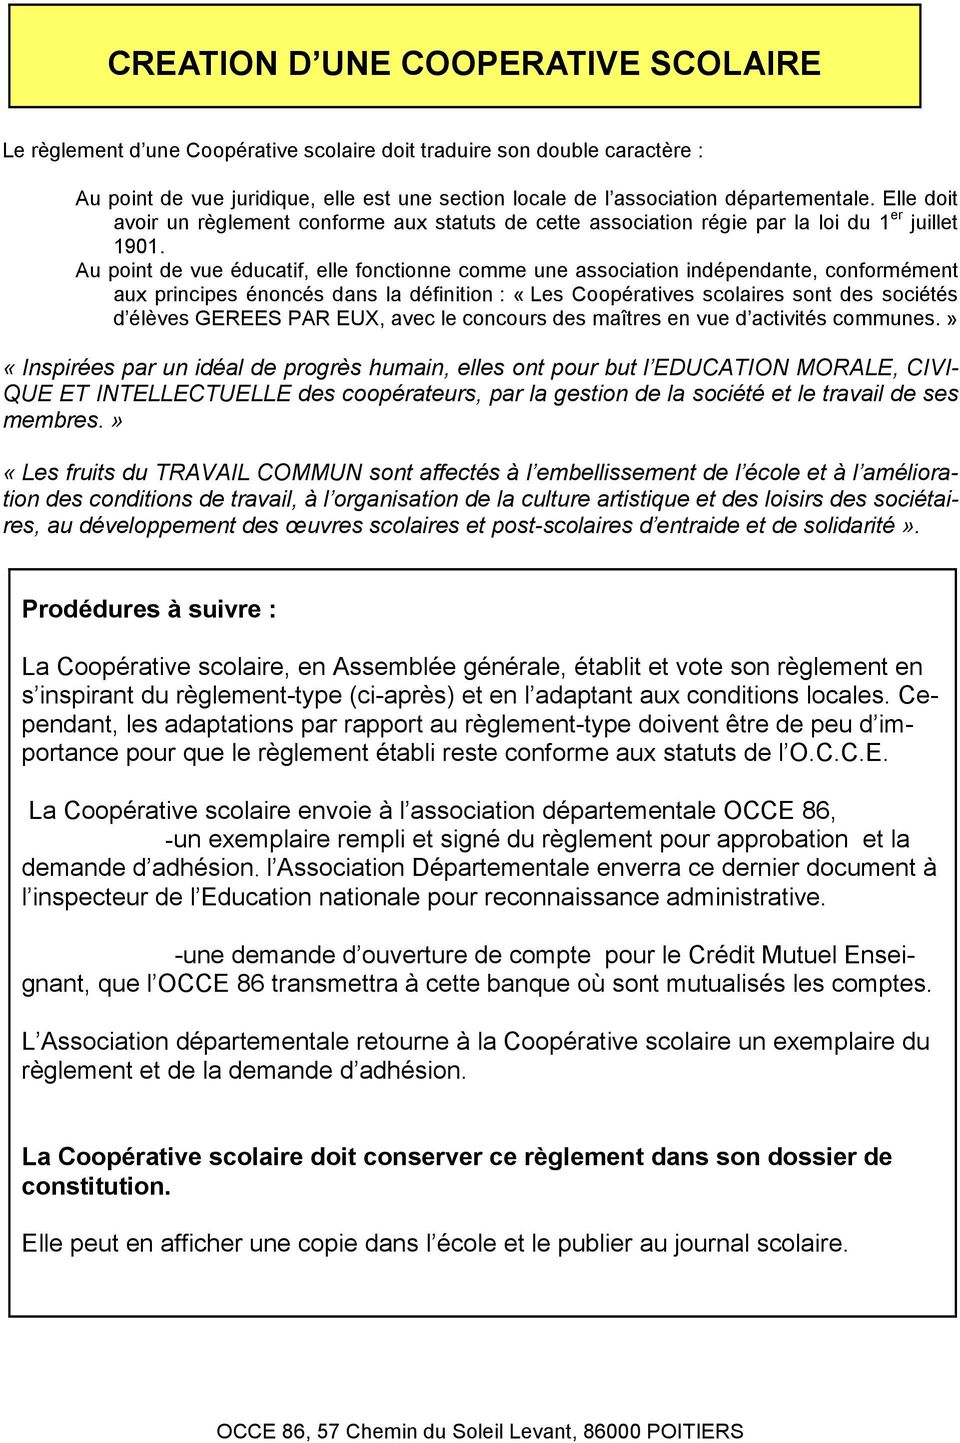 Creation D Une Cooperative Scolaire Pdf